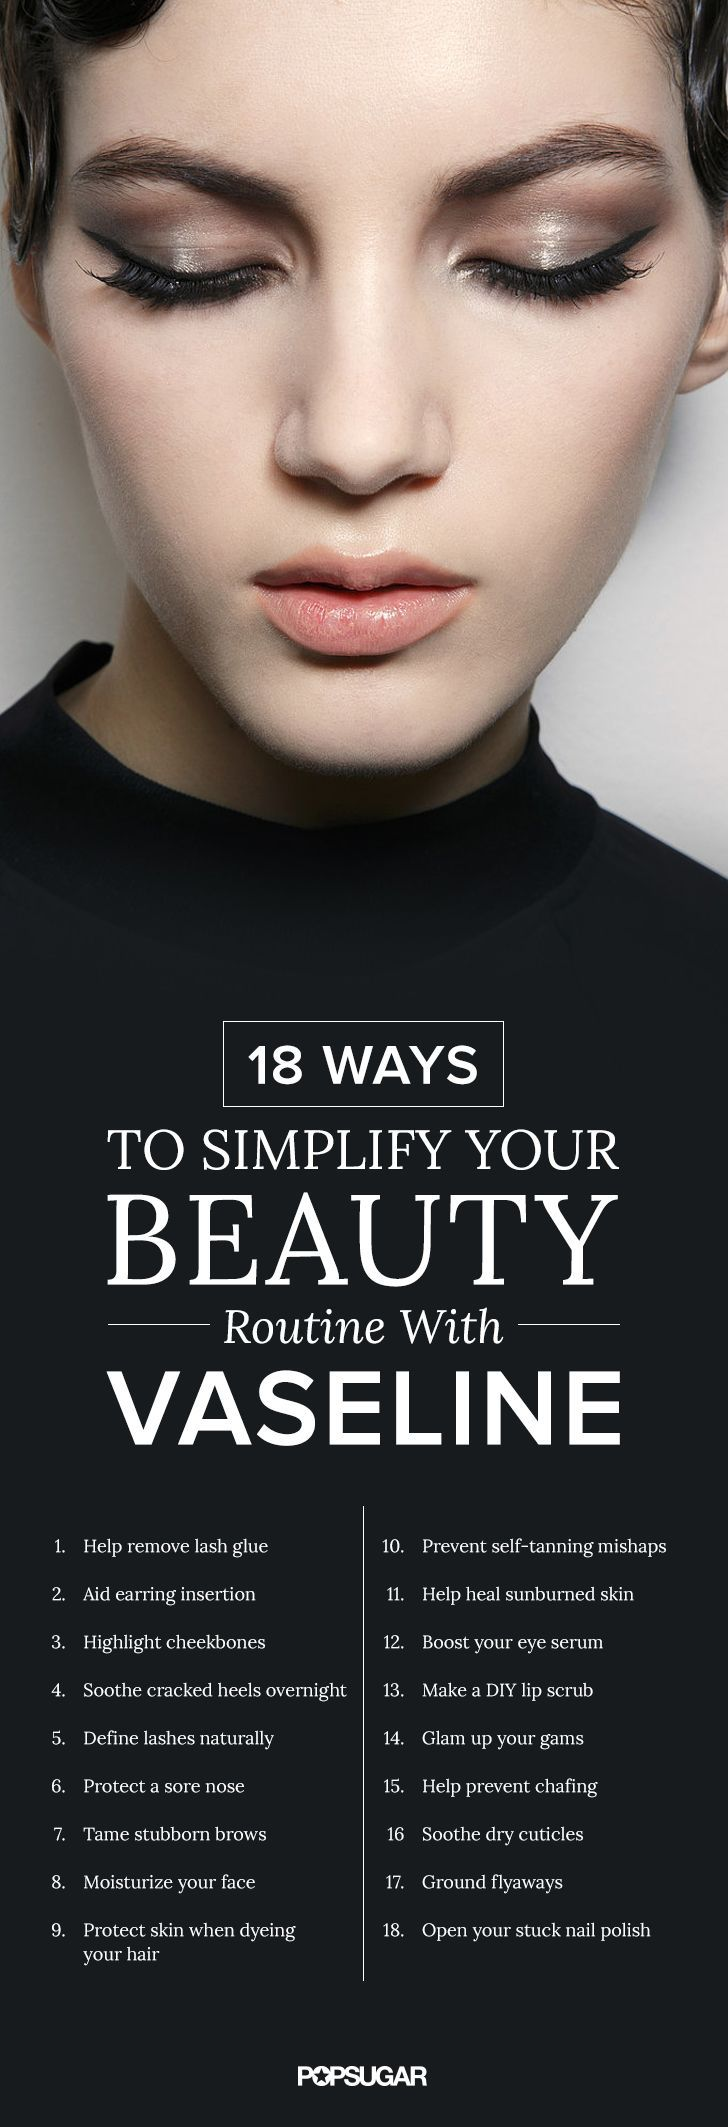 All your beauty problems can be solved with Vaseline. Try one of these beauty hacks to make your life easier!